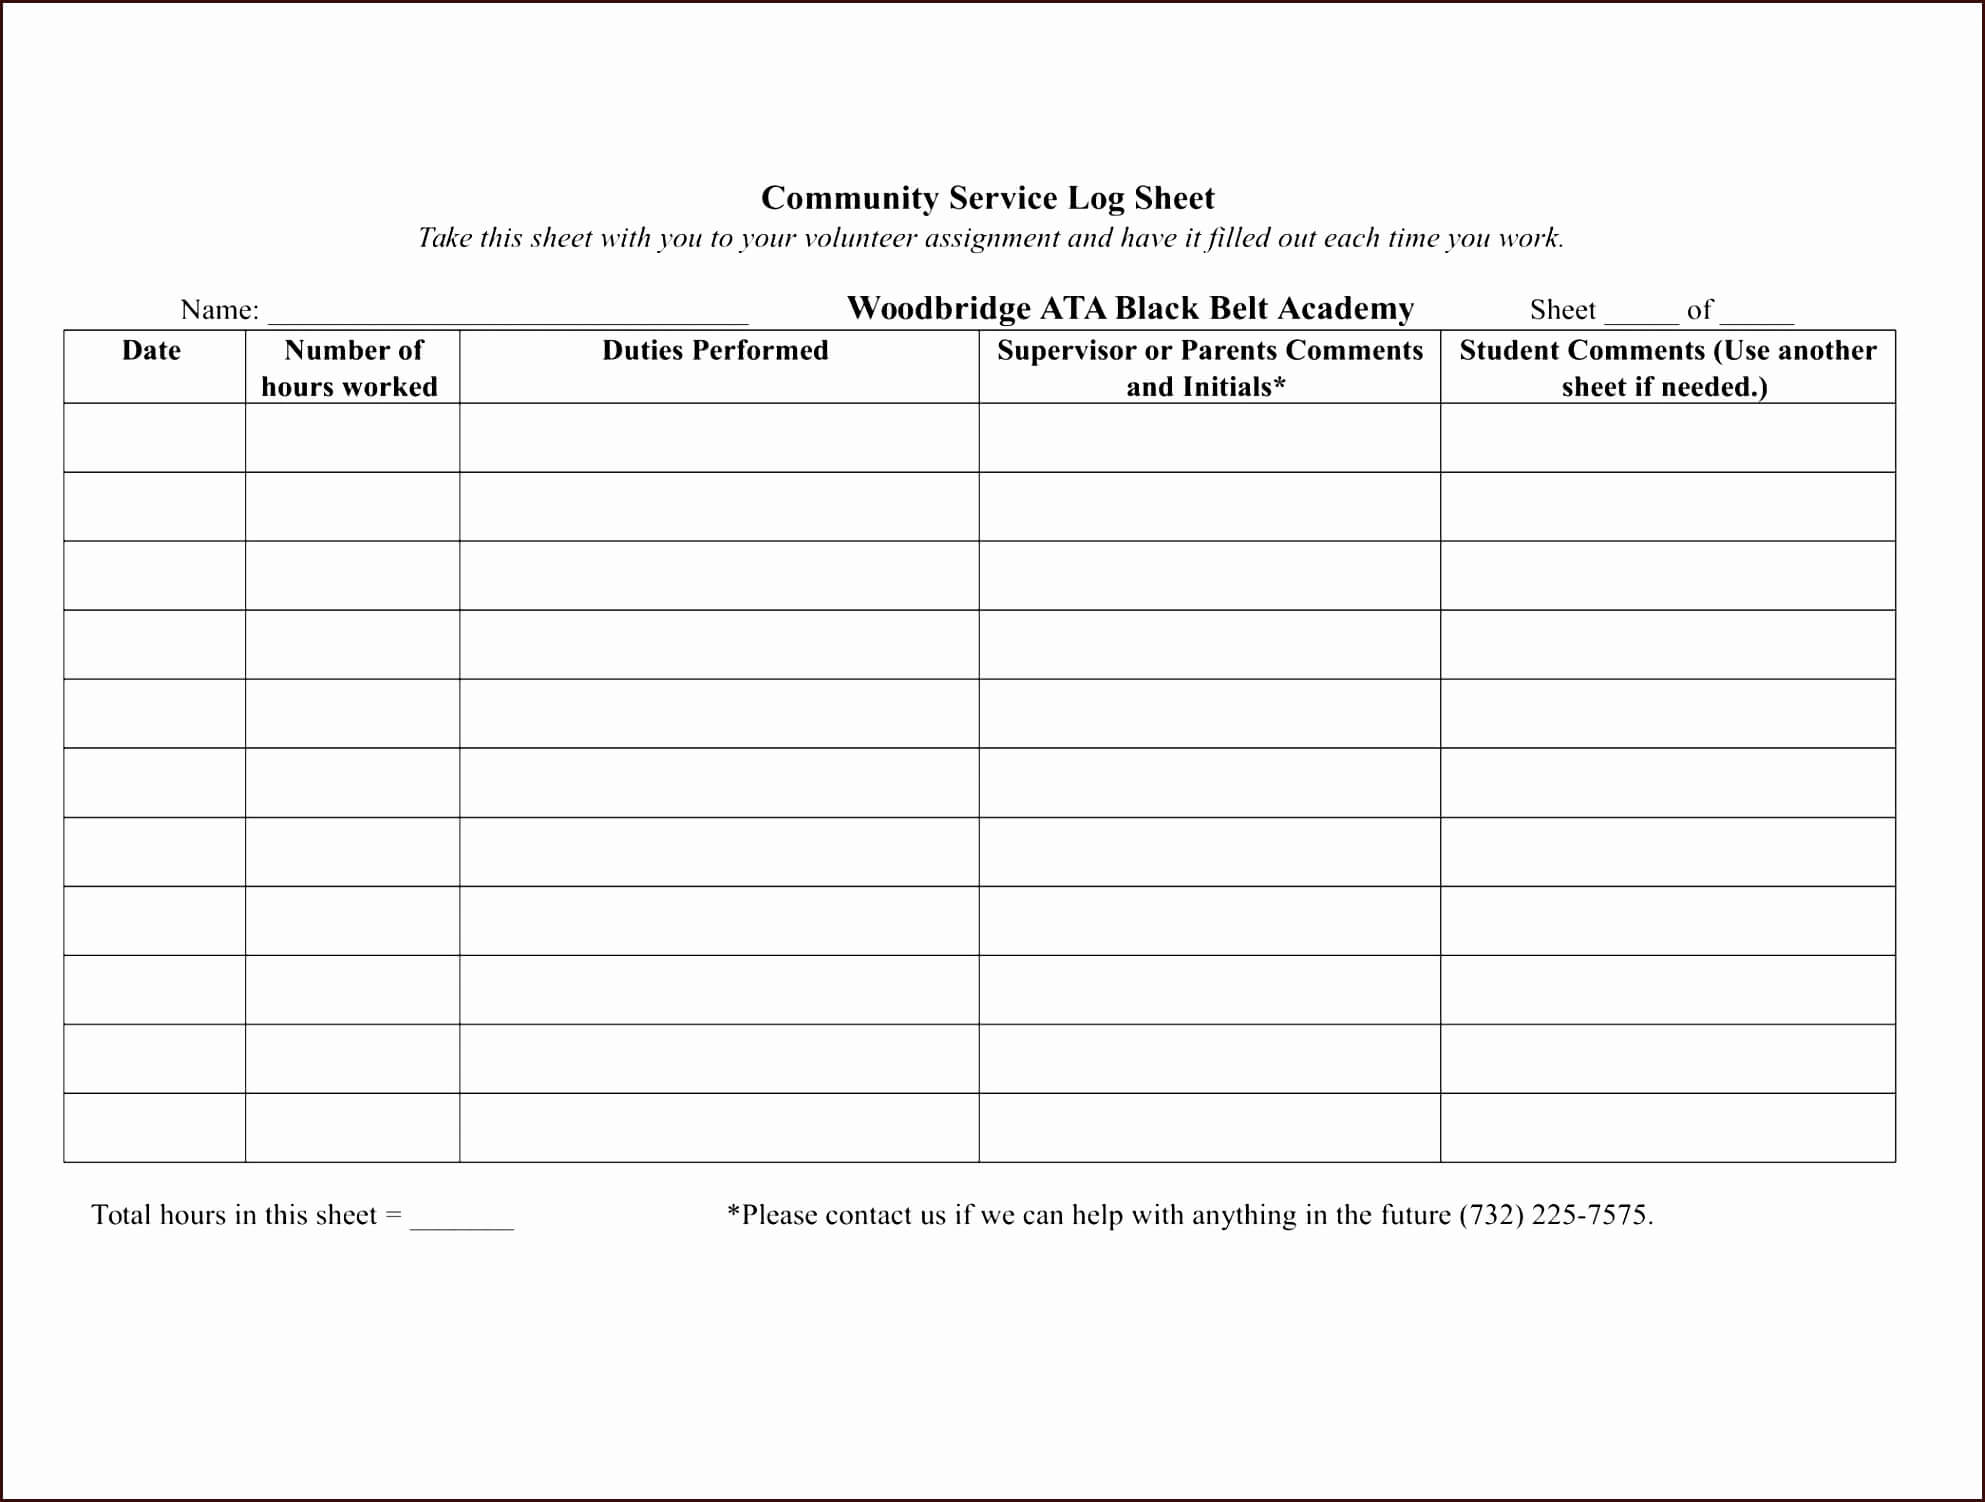 010 Volunteer Hours Form Template Ideas Community Service In Community Service Template Word